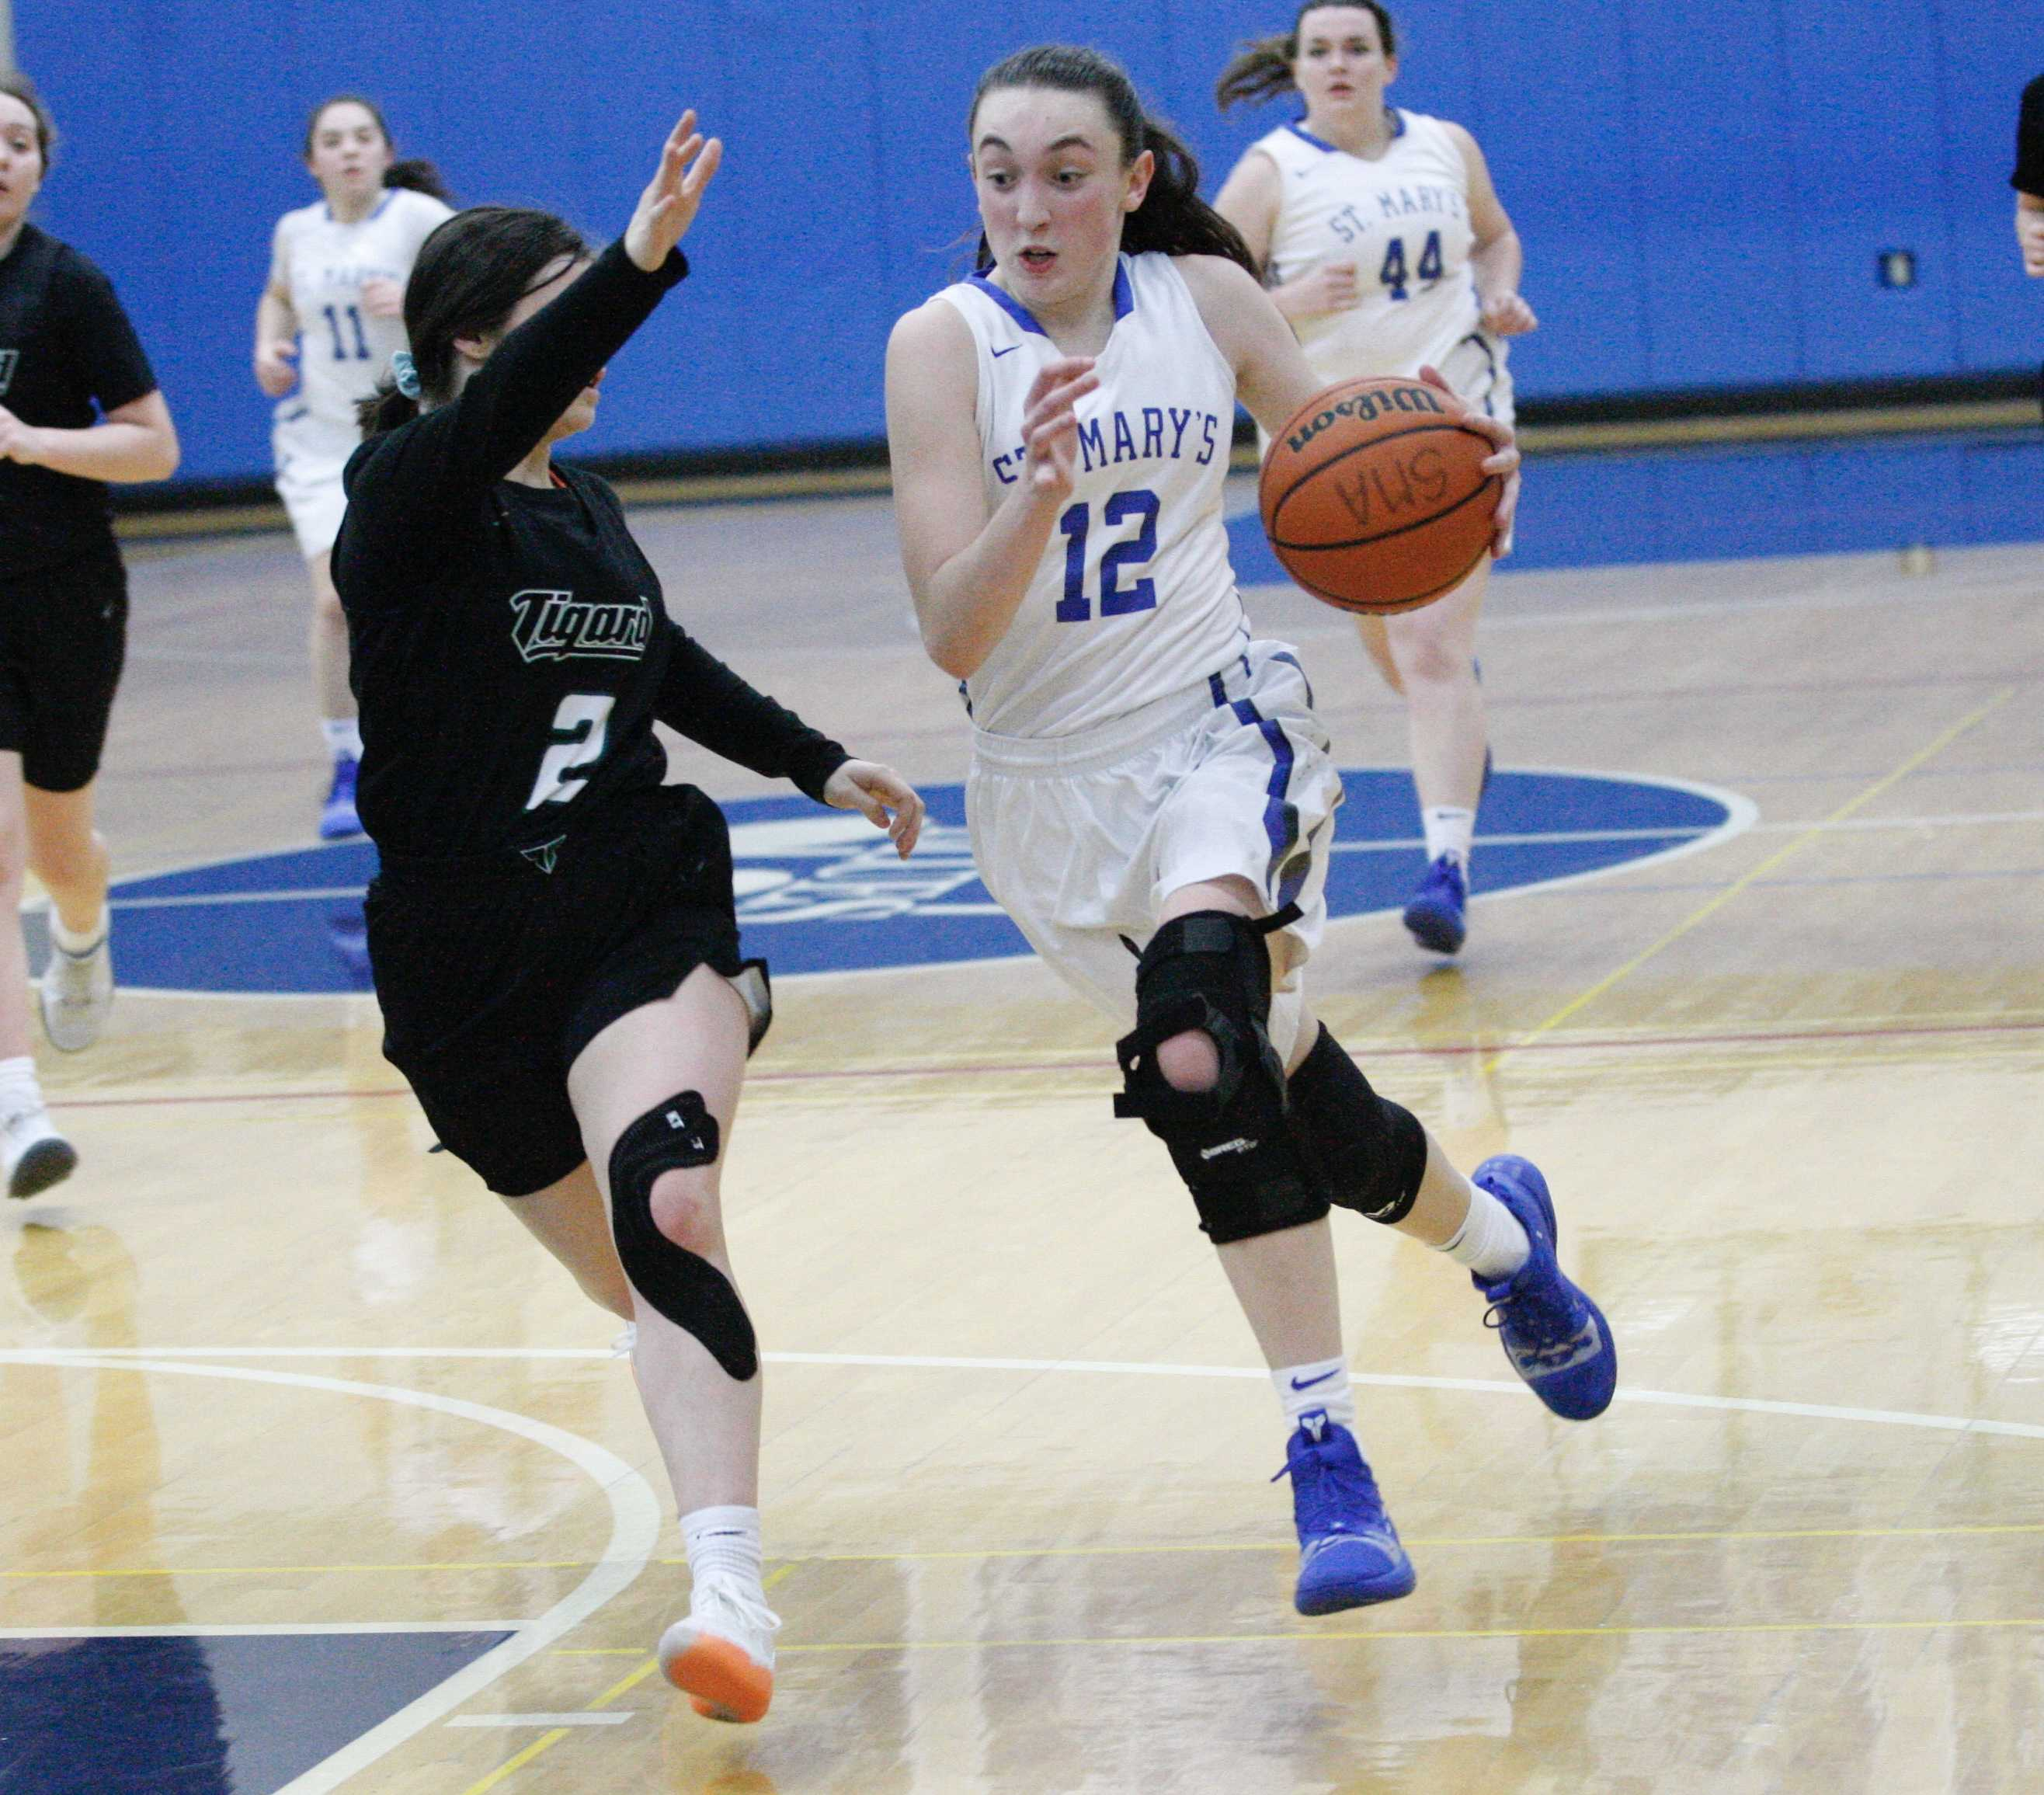 St. Mary's Academy's Anna Eddy drives into Tigard's Kennedy Brown on her way to a 14-point night. (Photo by Norm Maves Jr.)